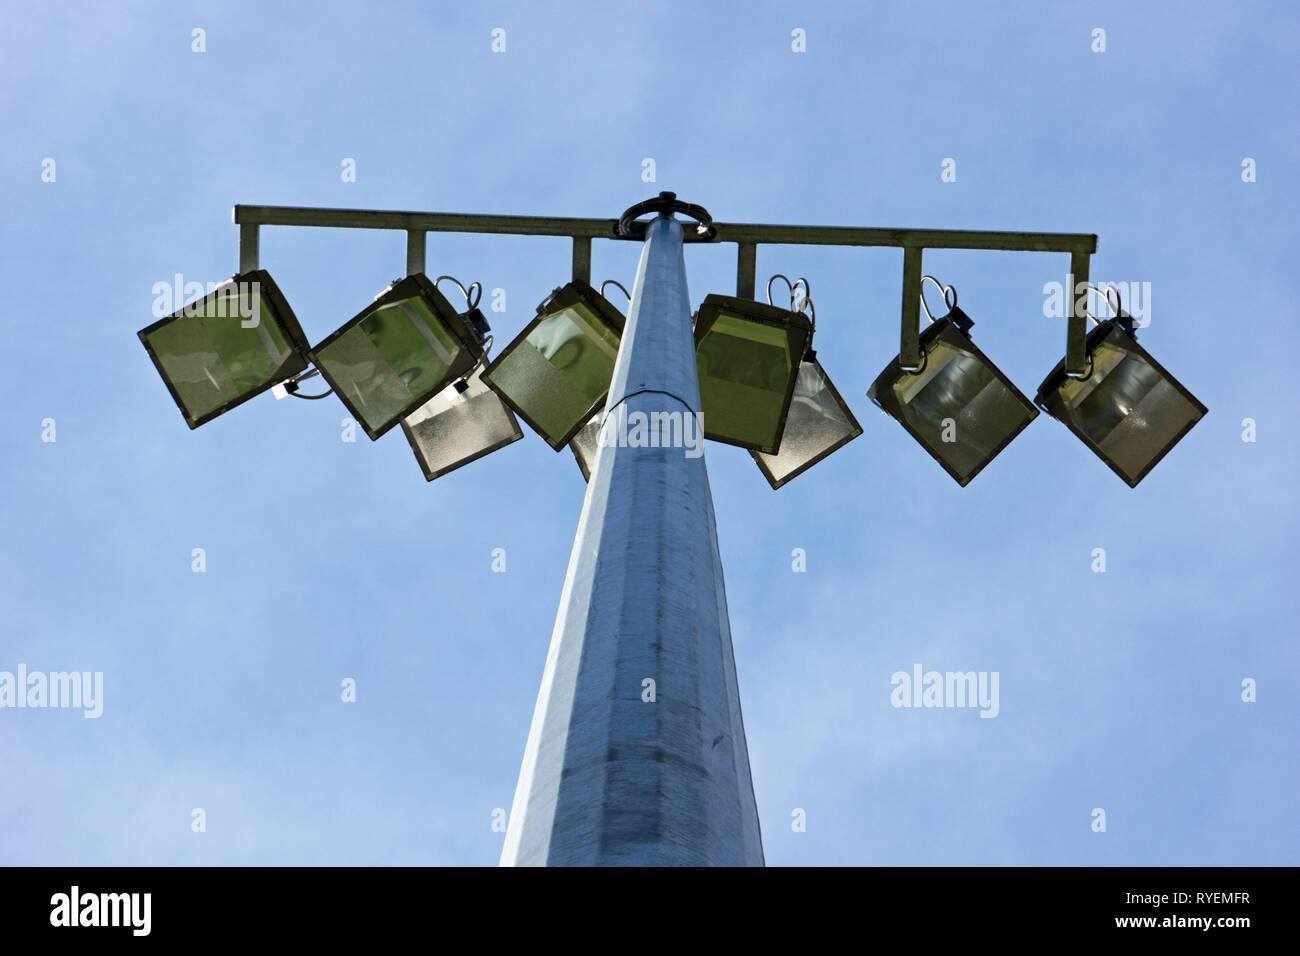 Stadium floodlight and lighting rig sits on top of a structural metal pylon, in Victoria, Australia. - Stock Image